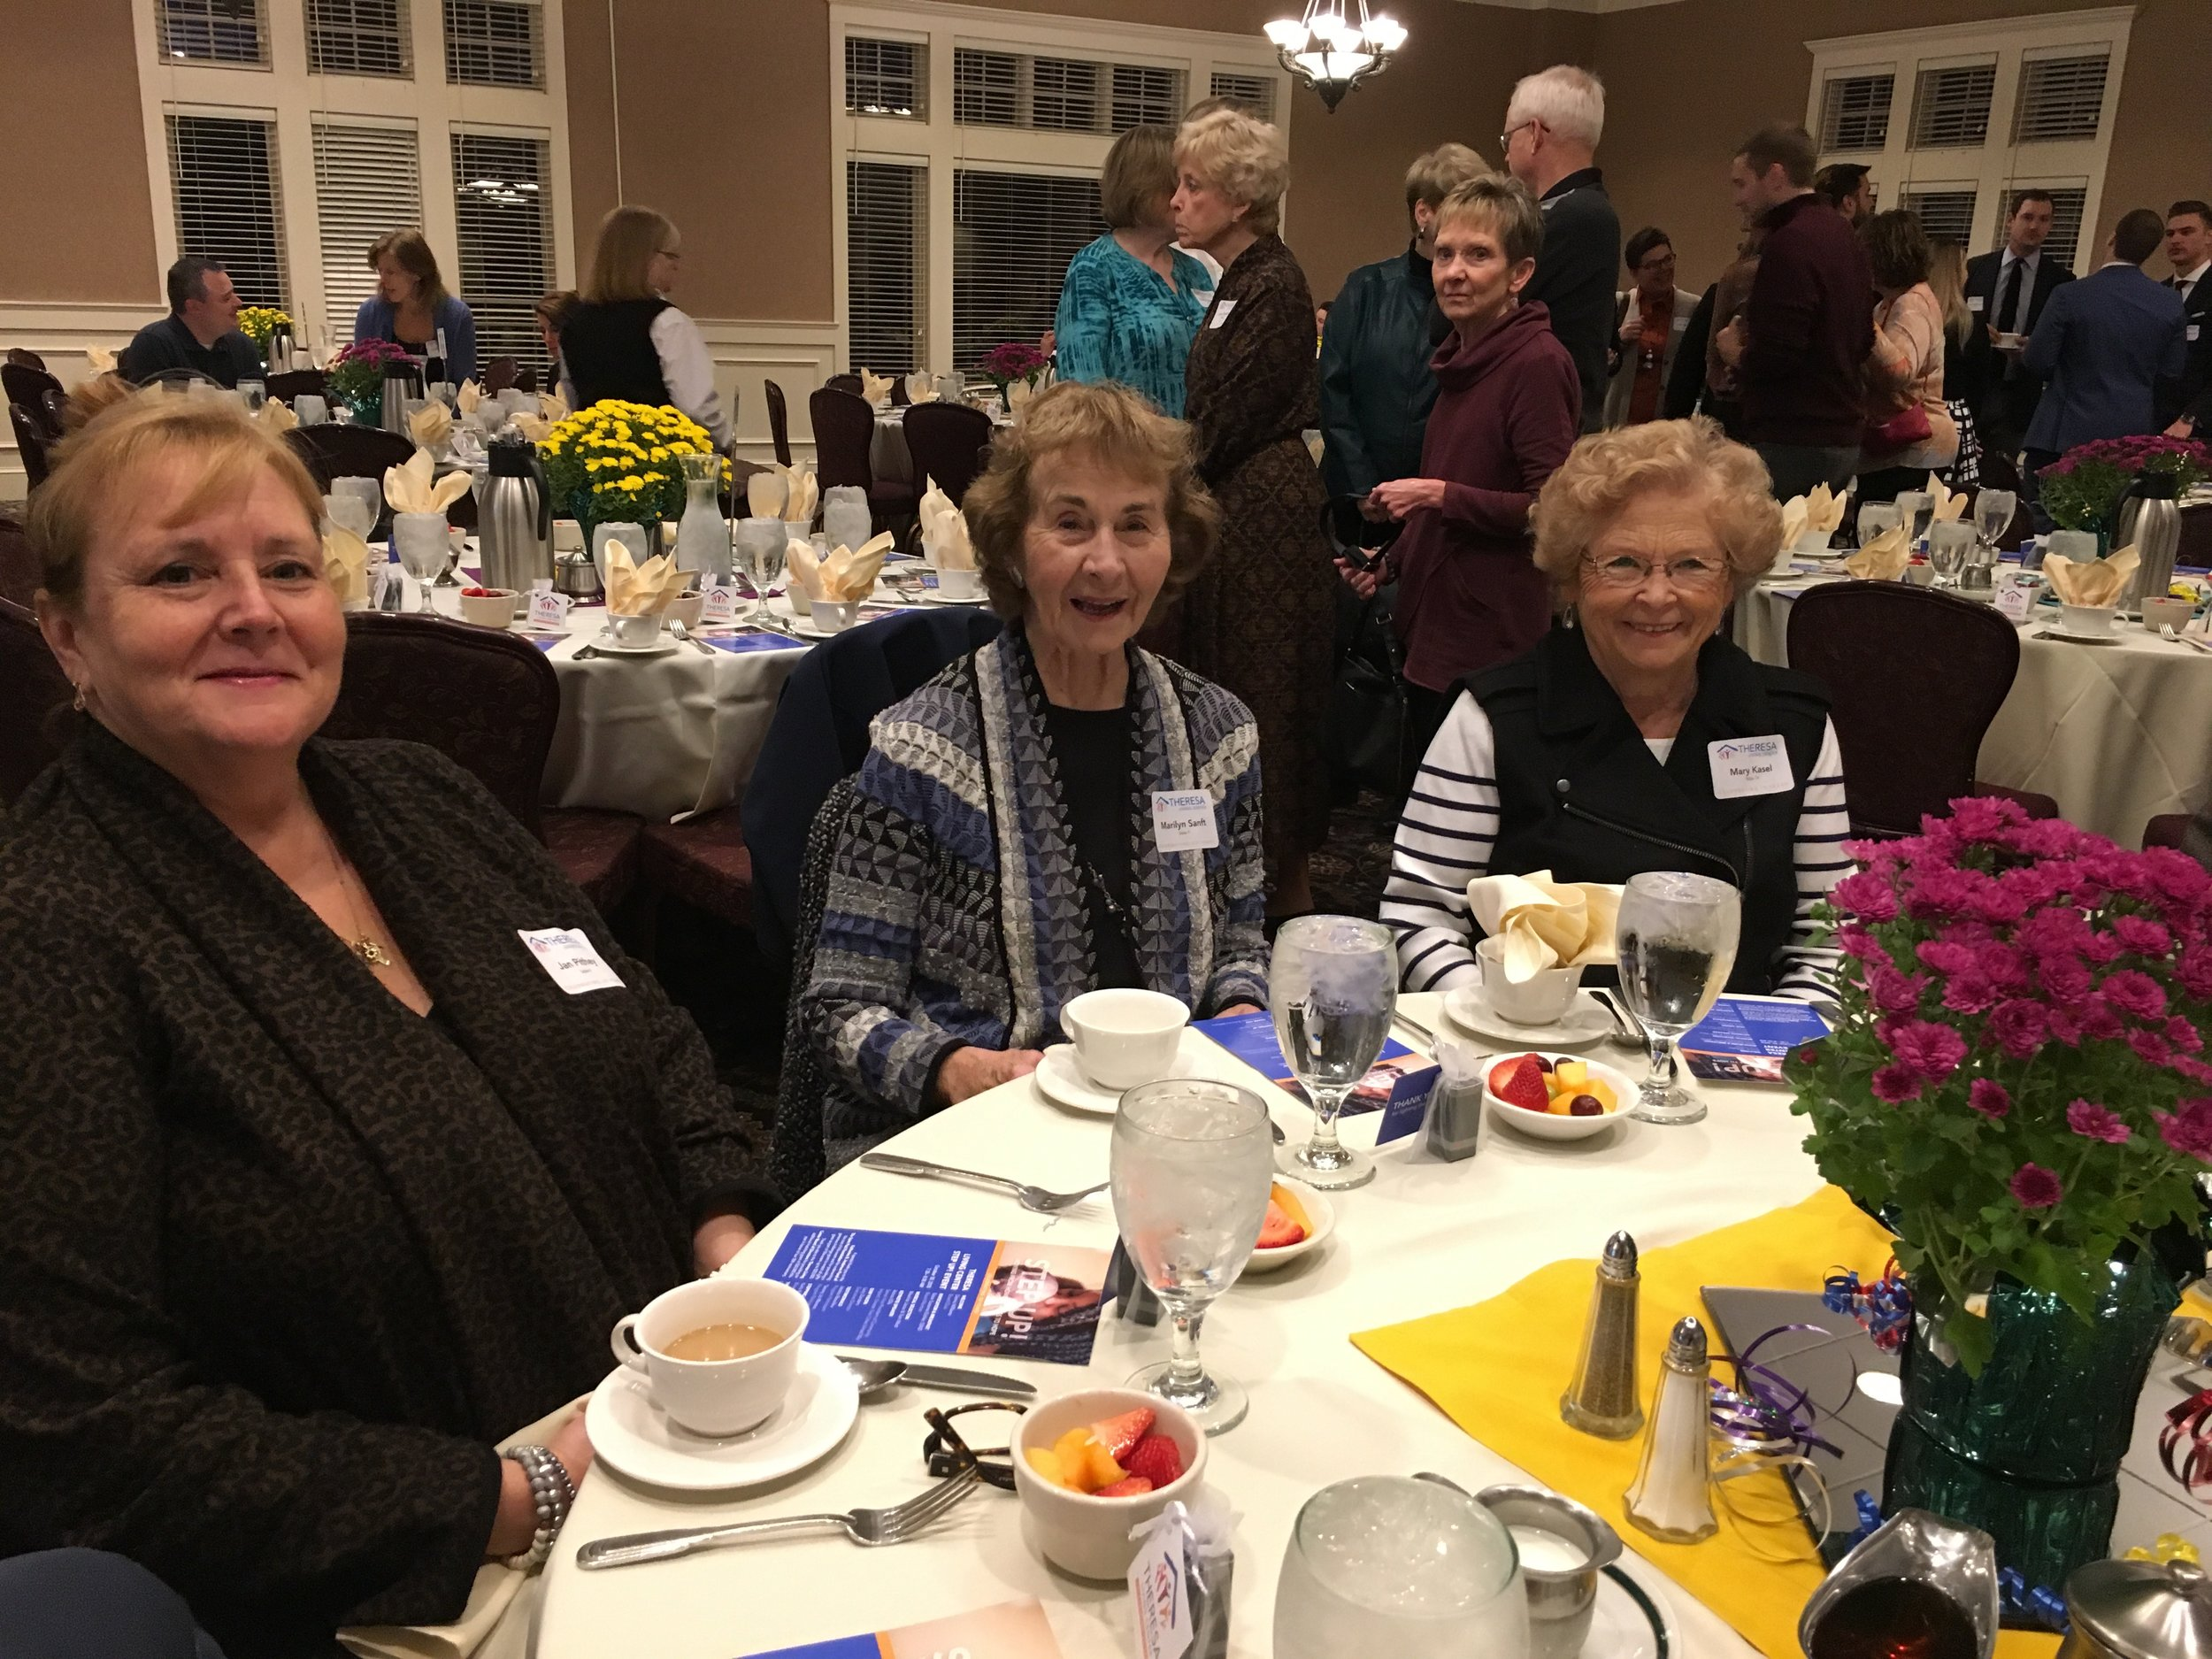 Jan Pithey, Marilyn Sanft, and Mary Kasel.